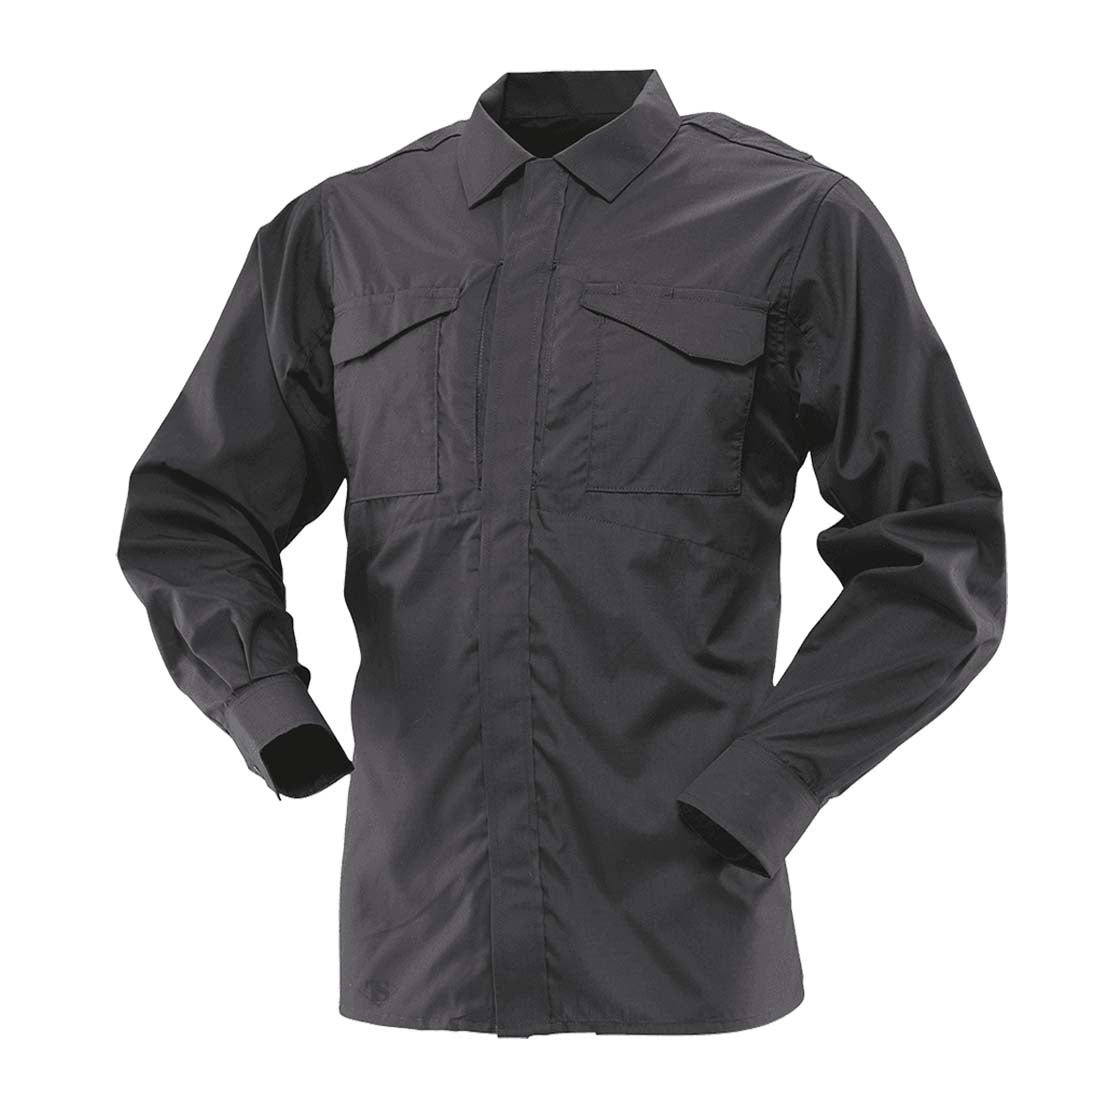 Tru-Spec 1051 Black Men's Ultralight Long Sleeve Uniform Shirt